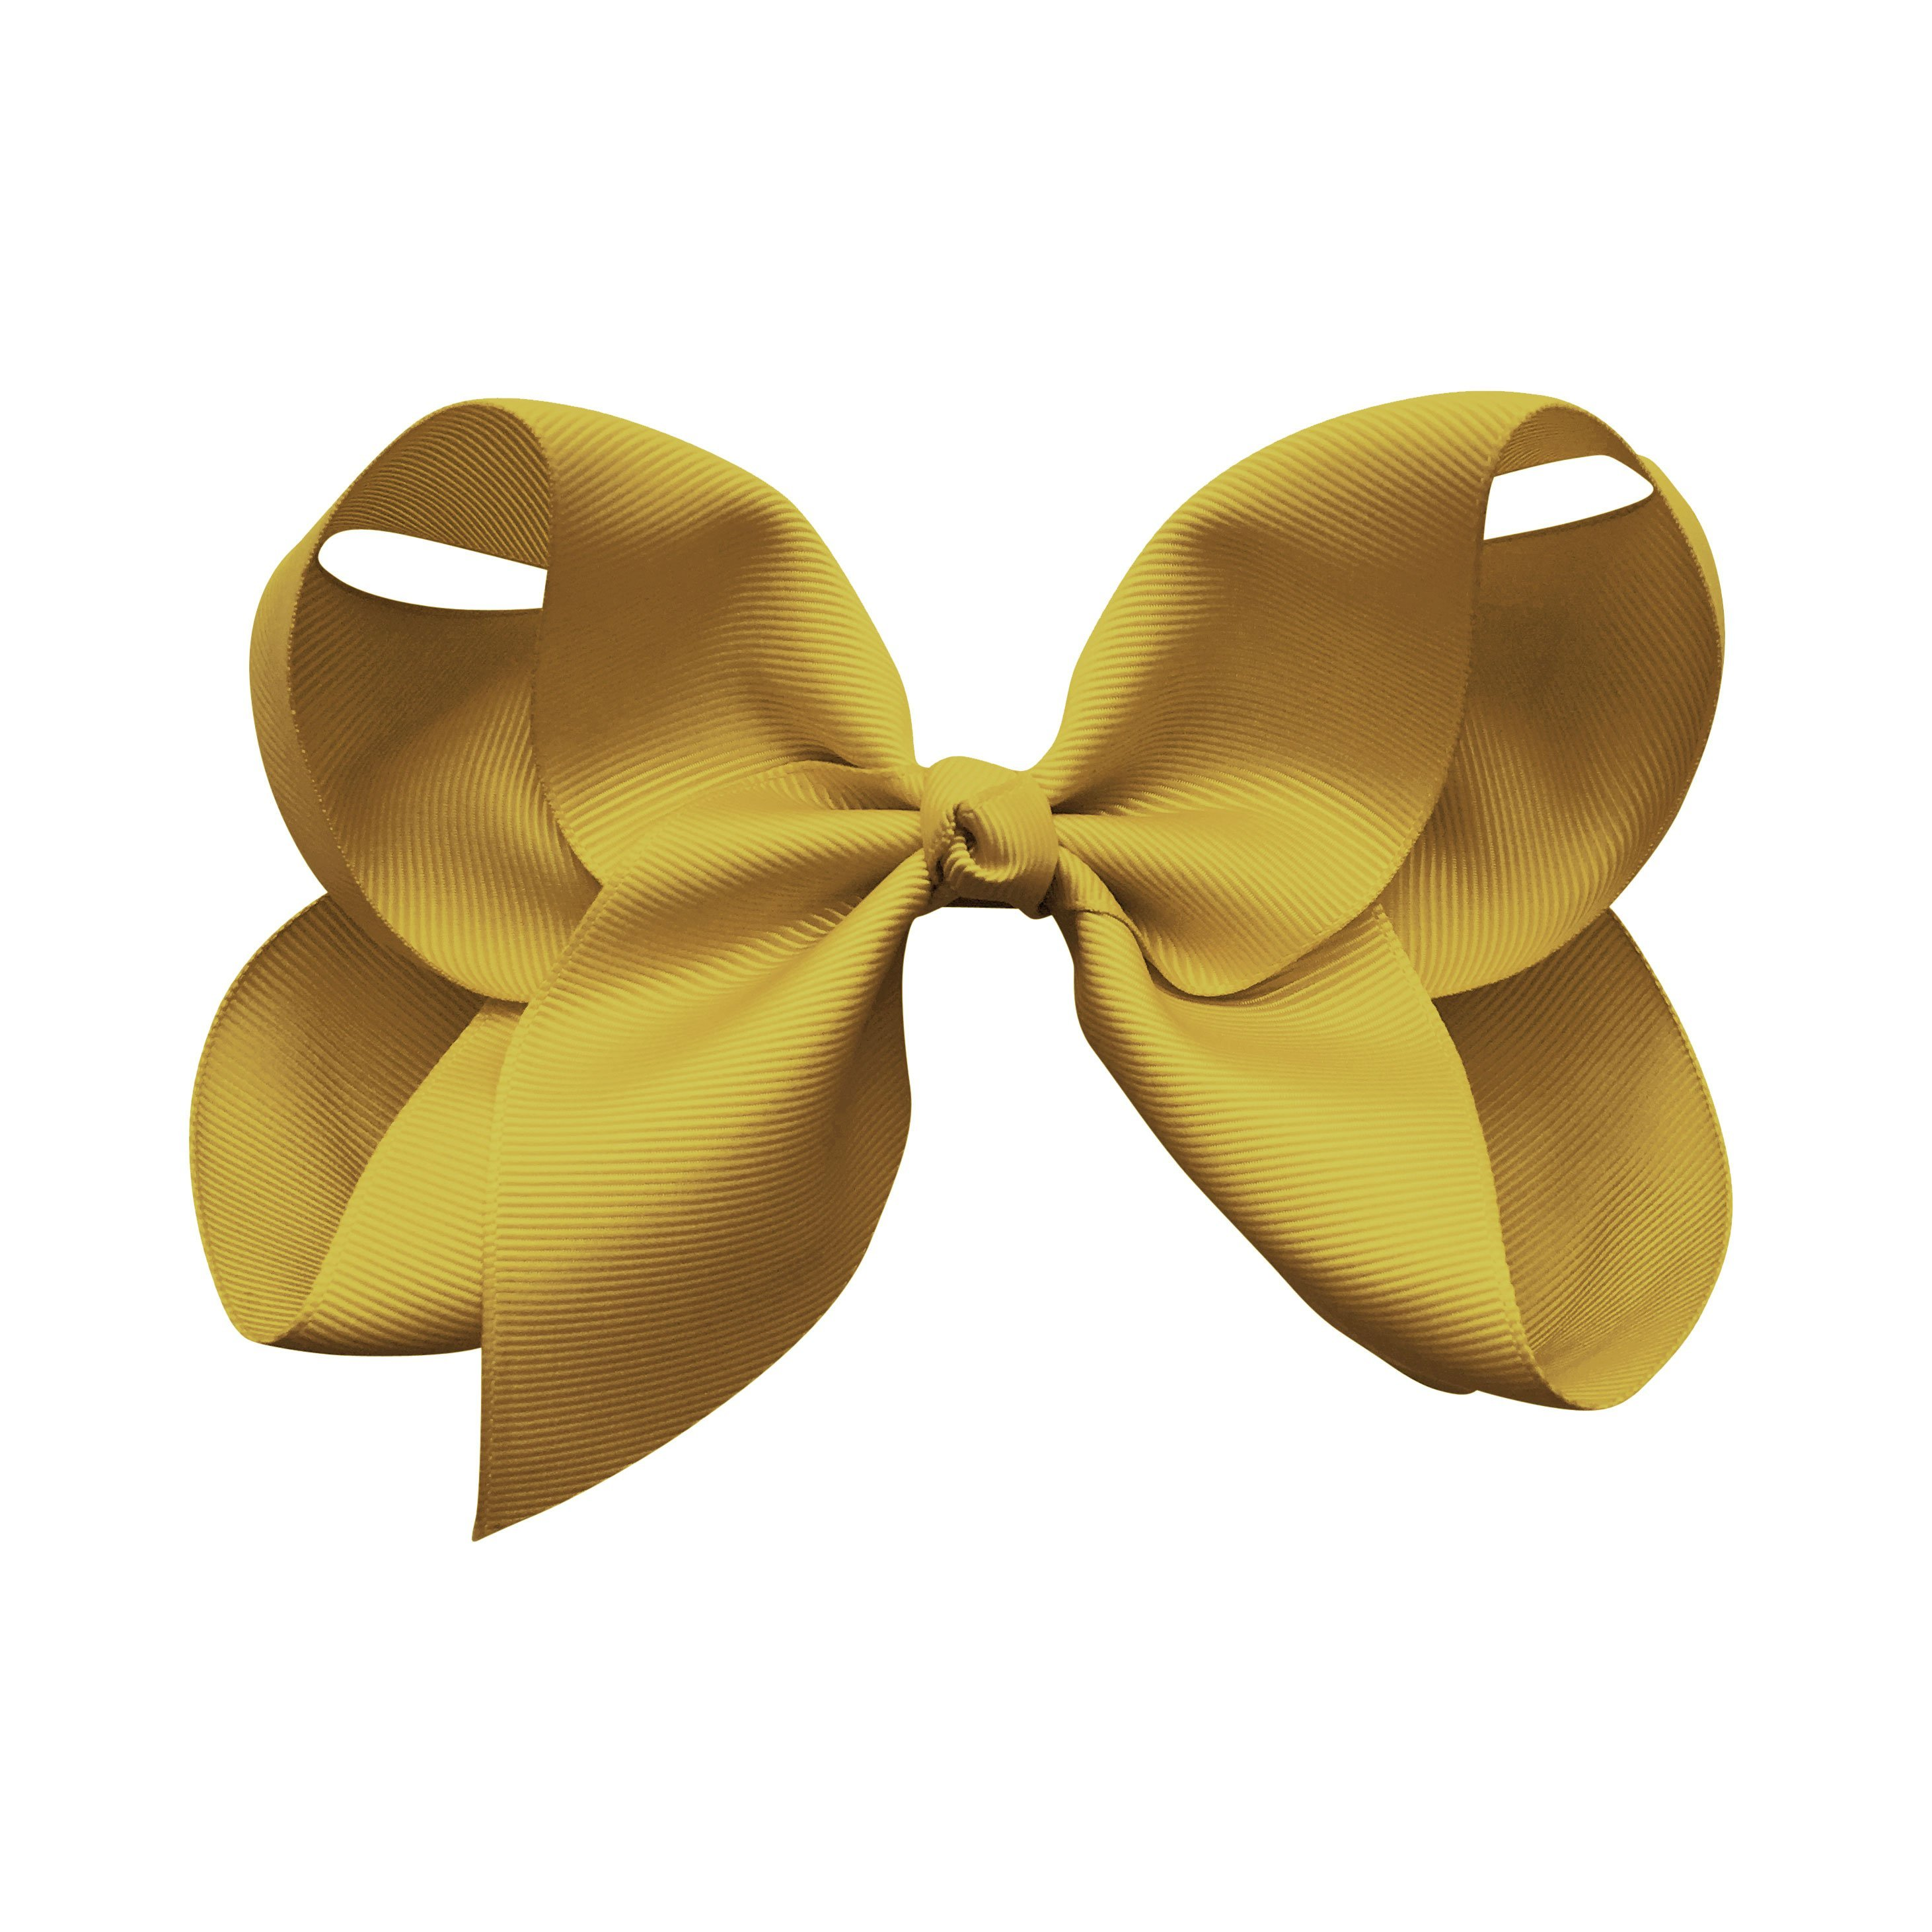 Image of Jumbo Boutique Bow - alligator clip - dijon